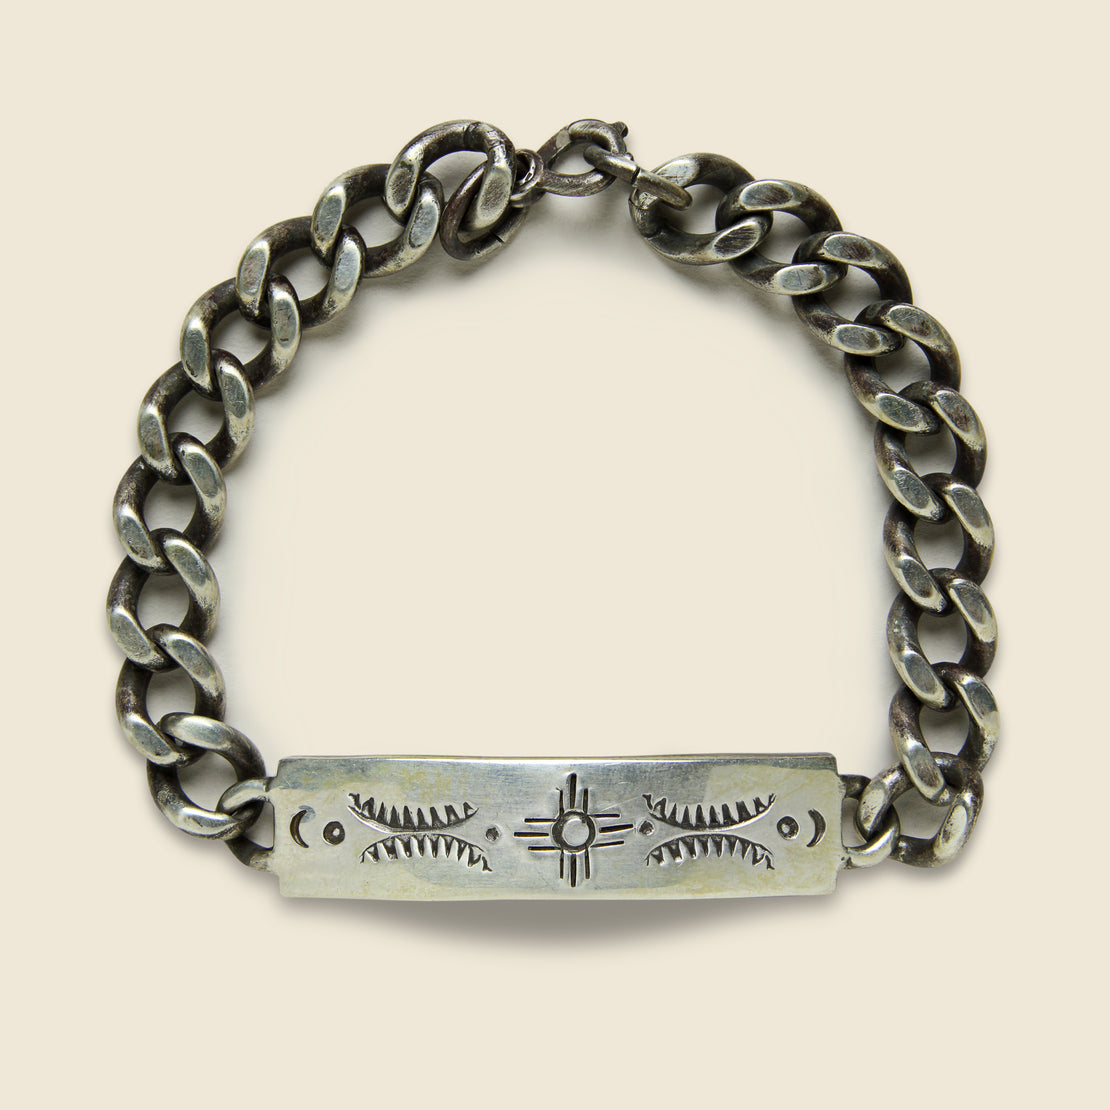 Stamped Camp Bracelet - Sterling Silver - MANO - STAG Provisions - Accessories - Cuffs